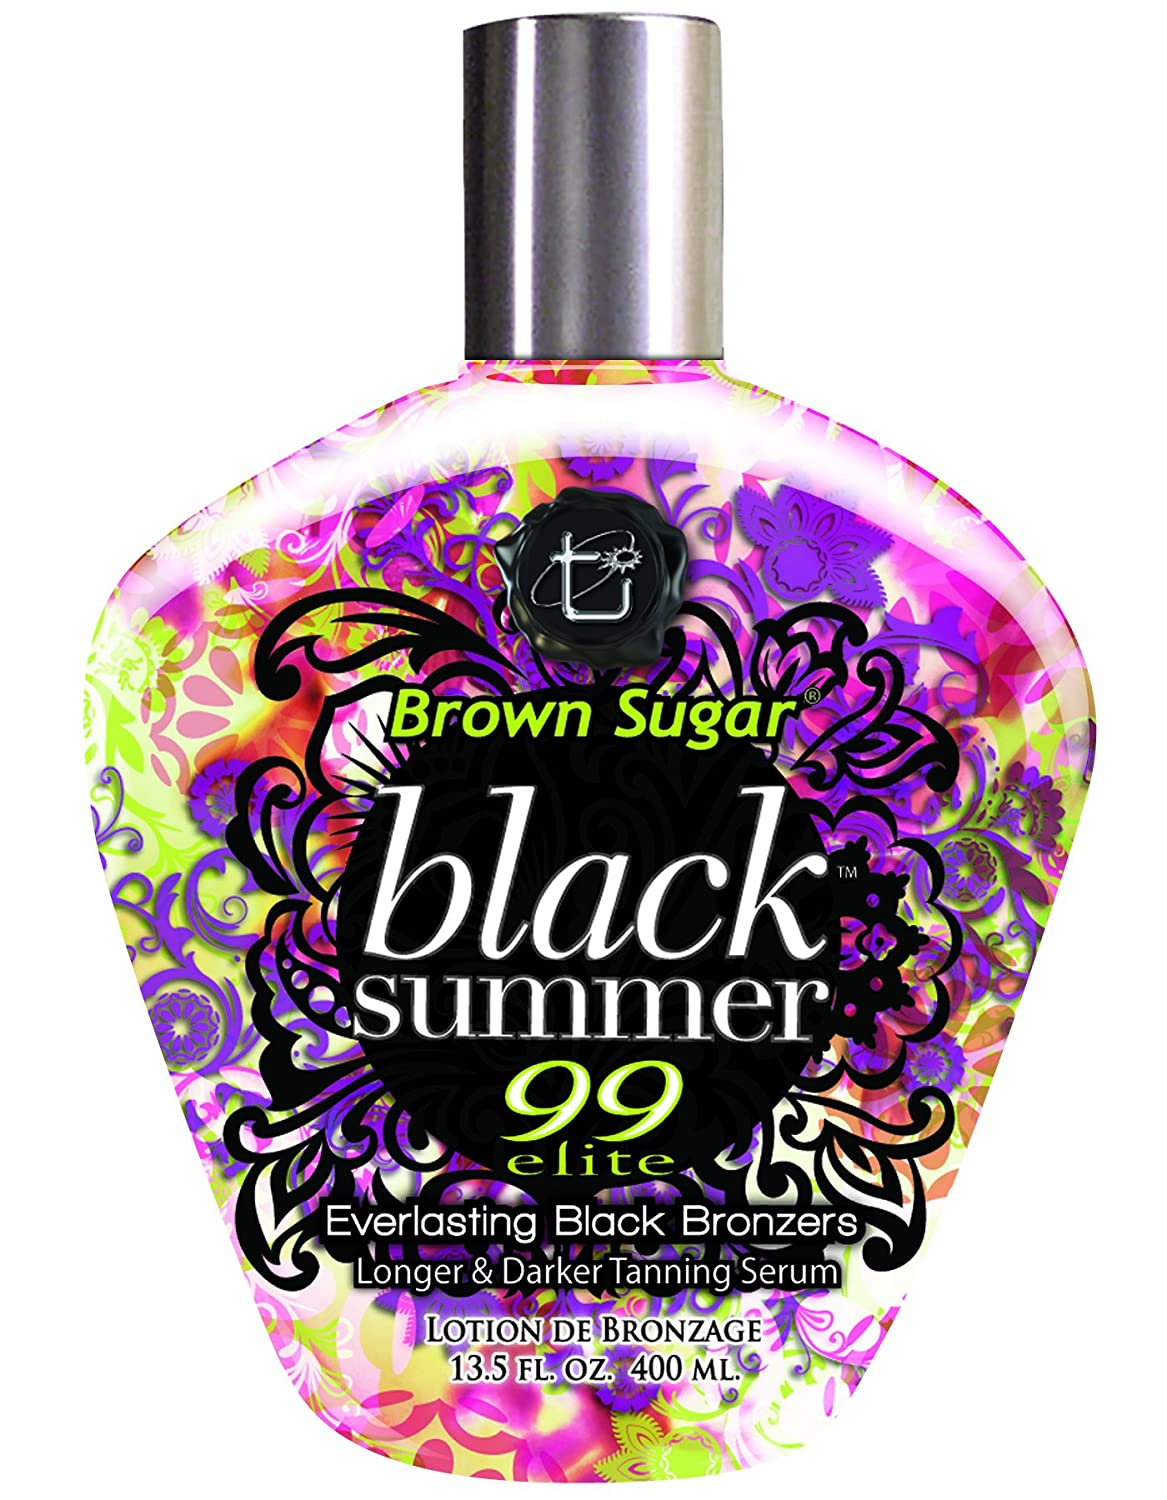 2012 Brown Sugar BLACK SUMMER Bronzer Tan Incorporated Tanning Lotion 13.5 oz.